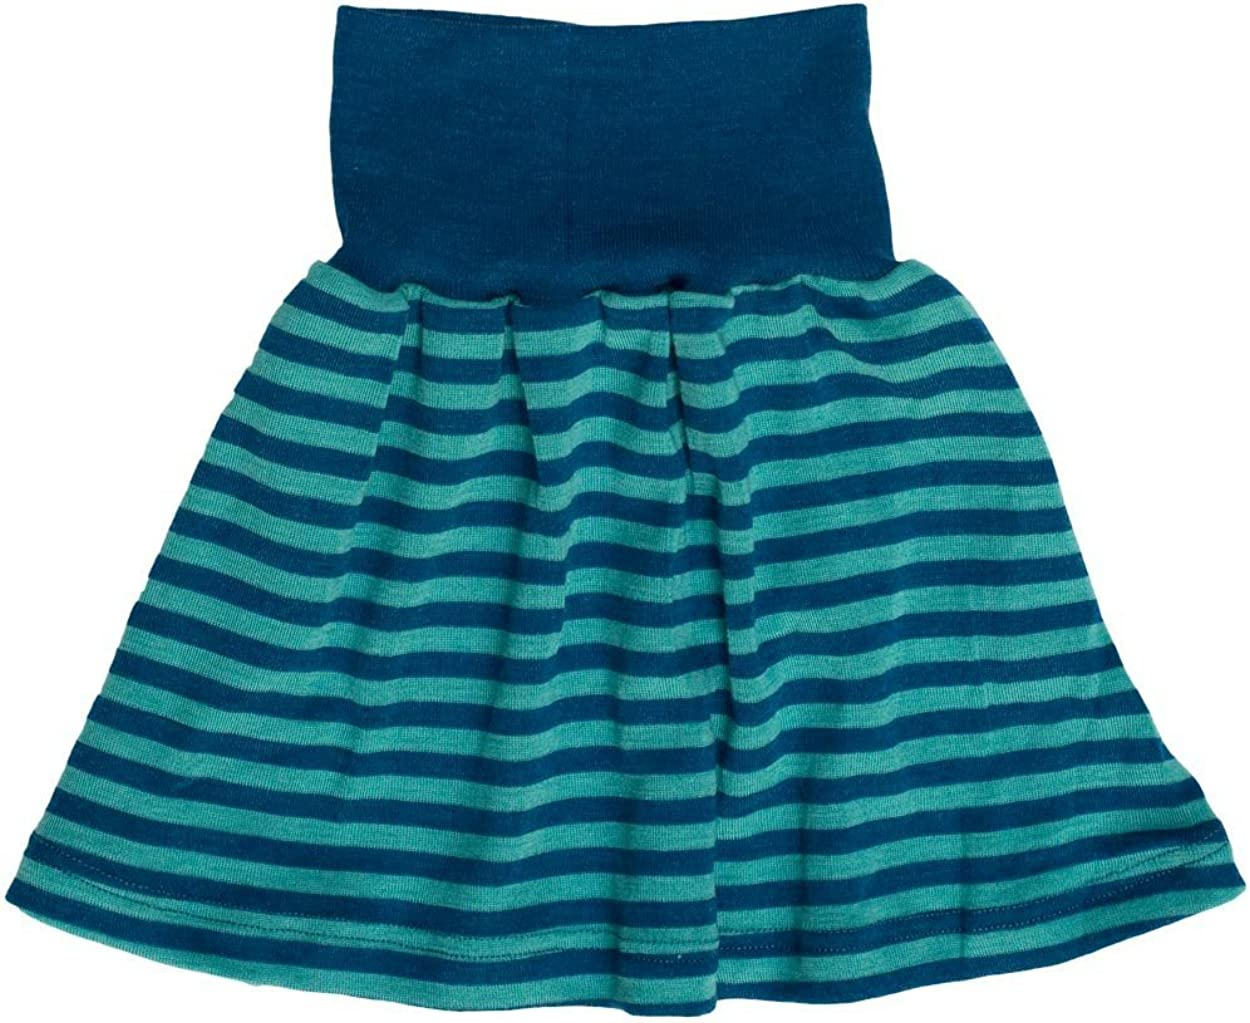 2 Colors Engel Natur Girls Skirt With Soft Cuff Merino Wool And Silk